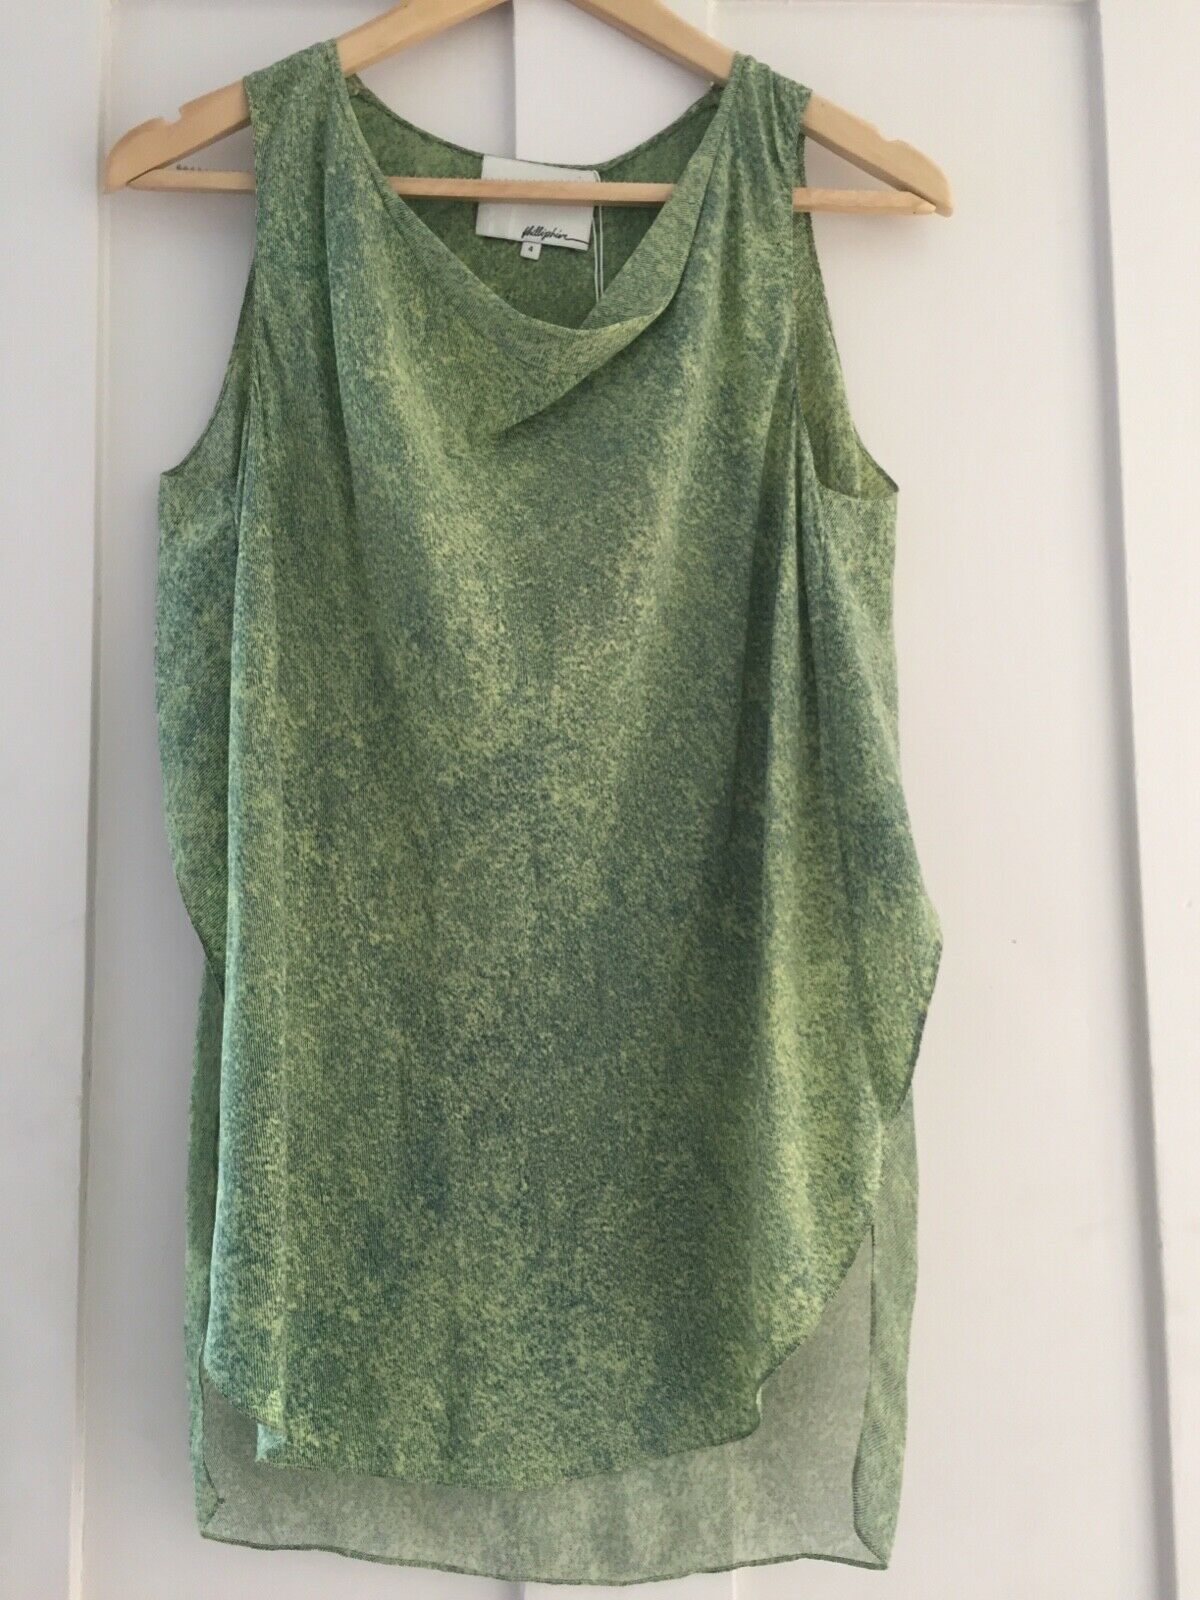 PHILIP LIM damen'S NEW Grün SILK TOP Größe 4